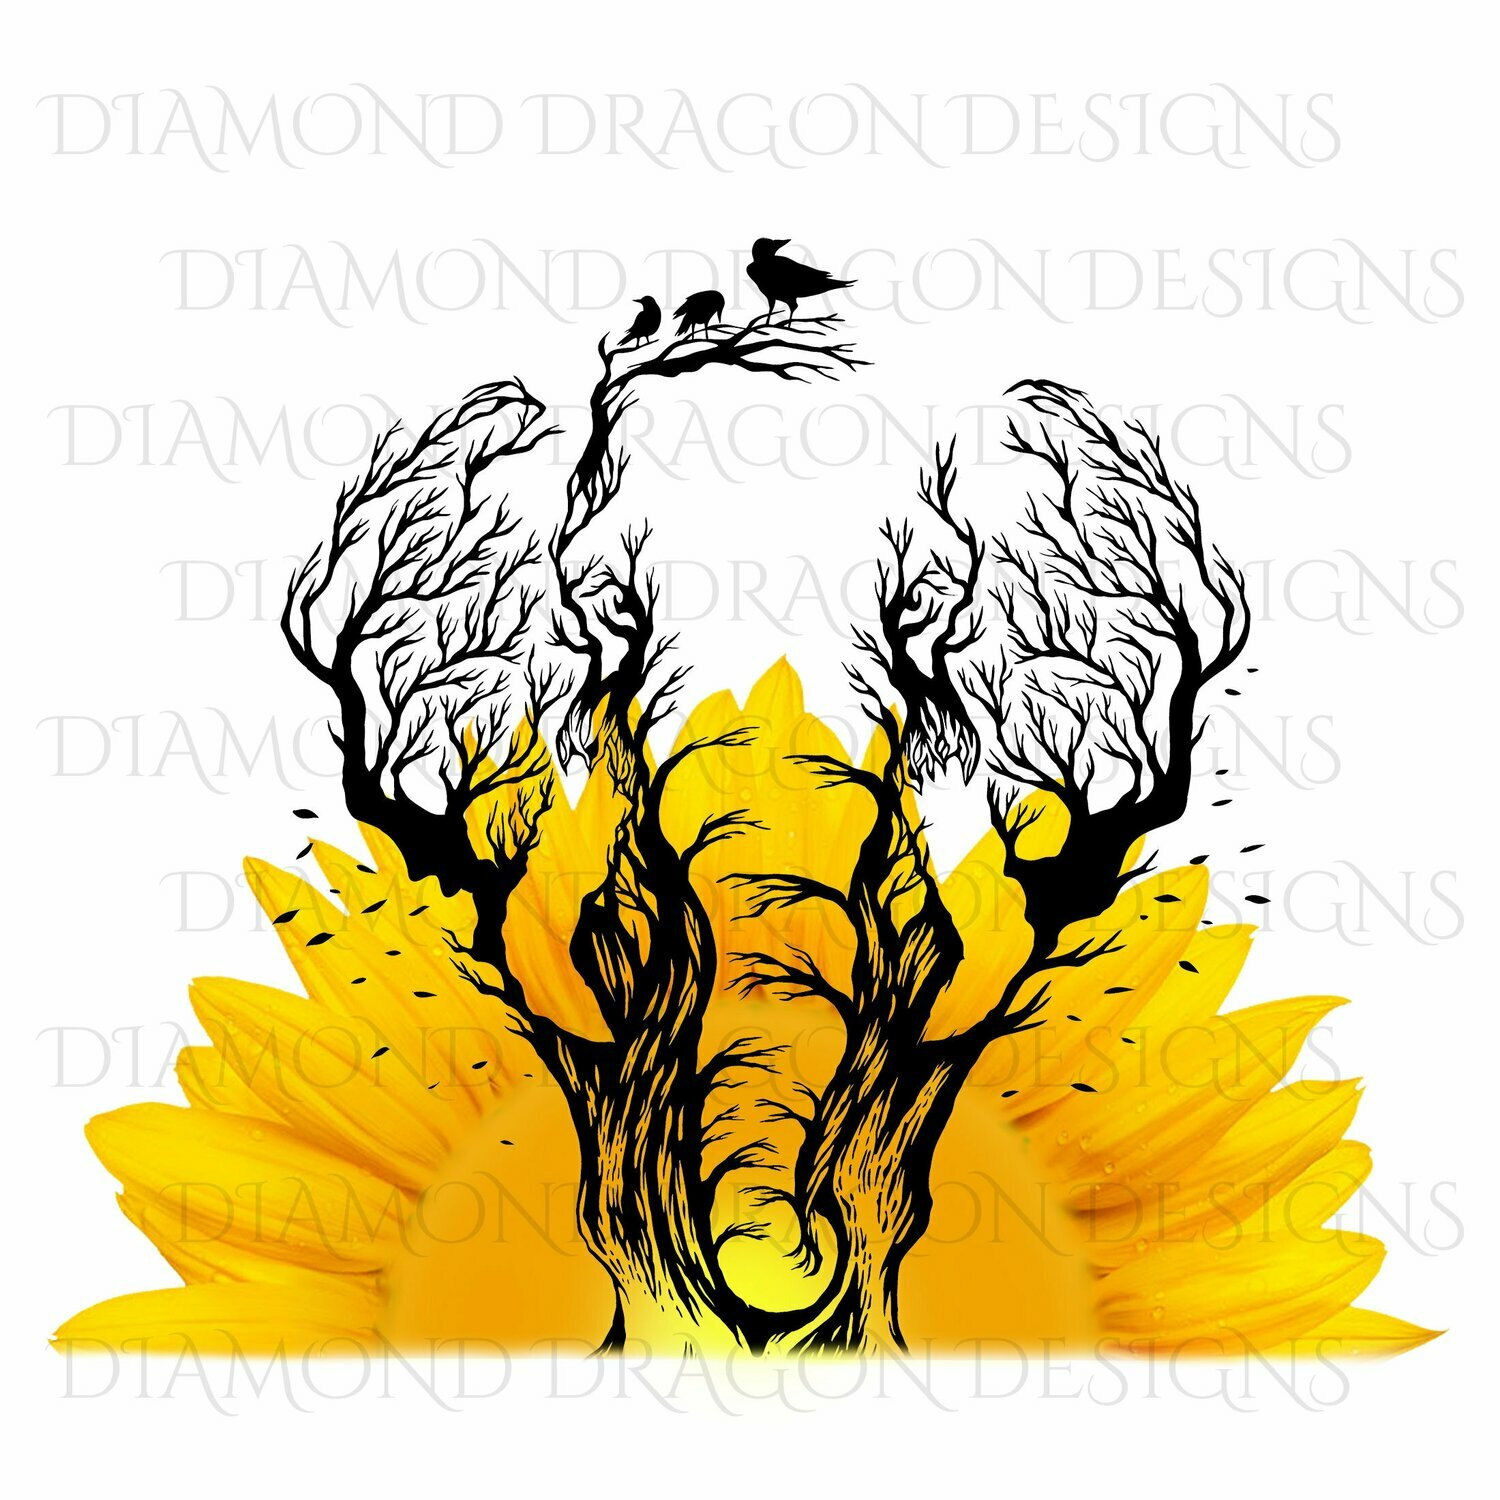 Elephants - Sunflower Elephant, Sunflower Sunrise, Elephant Tree Drawing, Digital Image